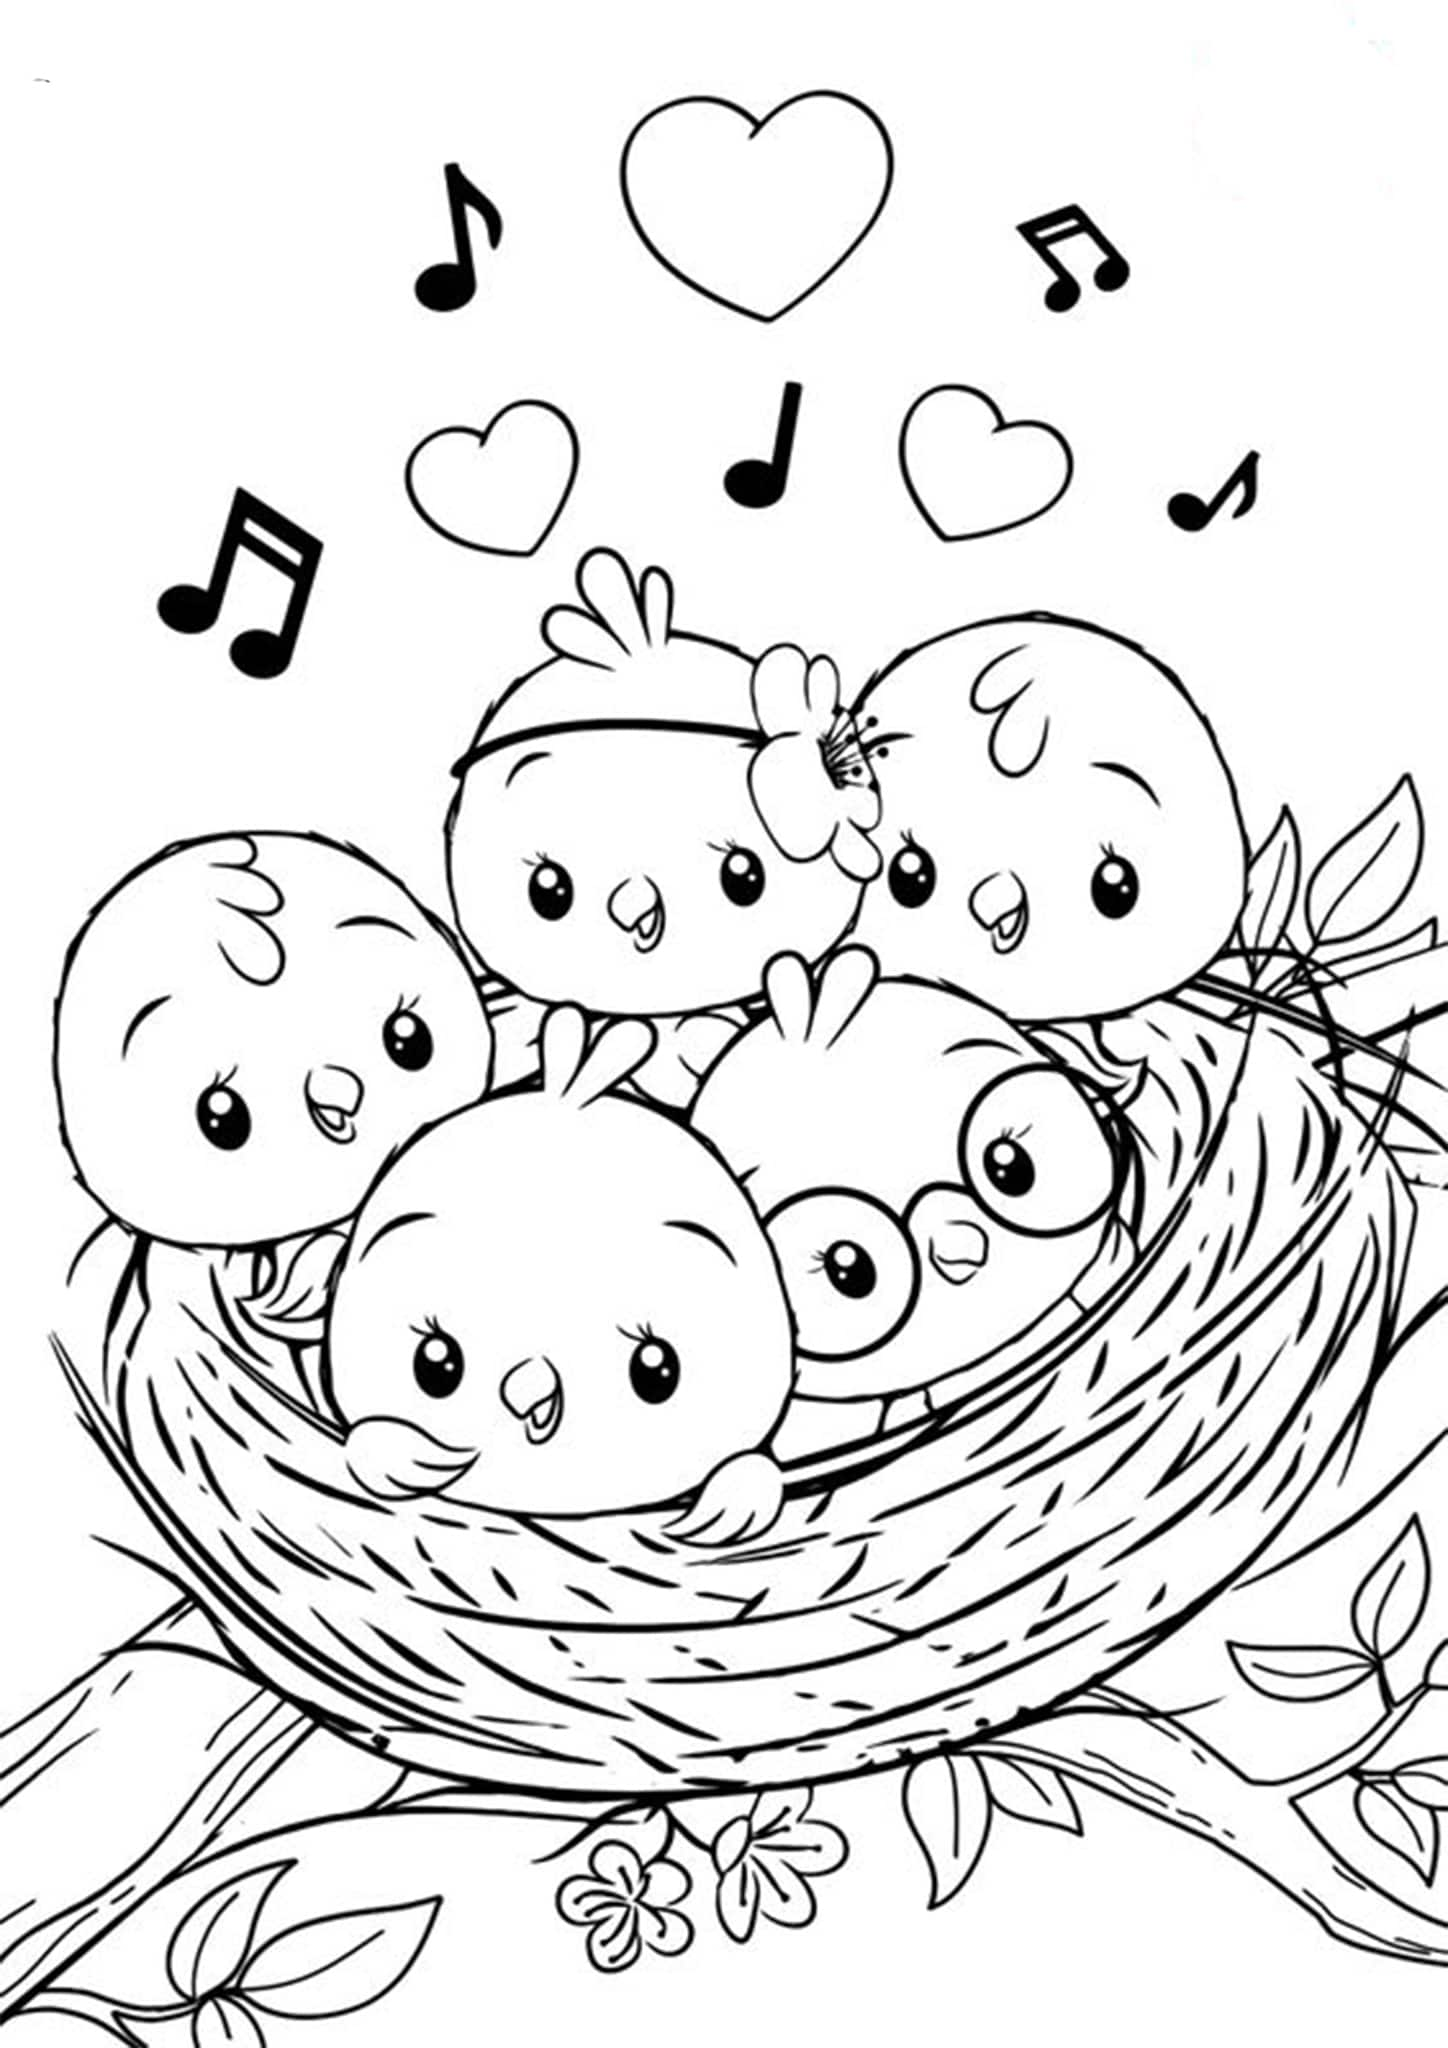 birds to colour and print bird coloring pages to download and print for free print to and colour birds